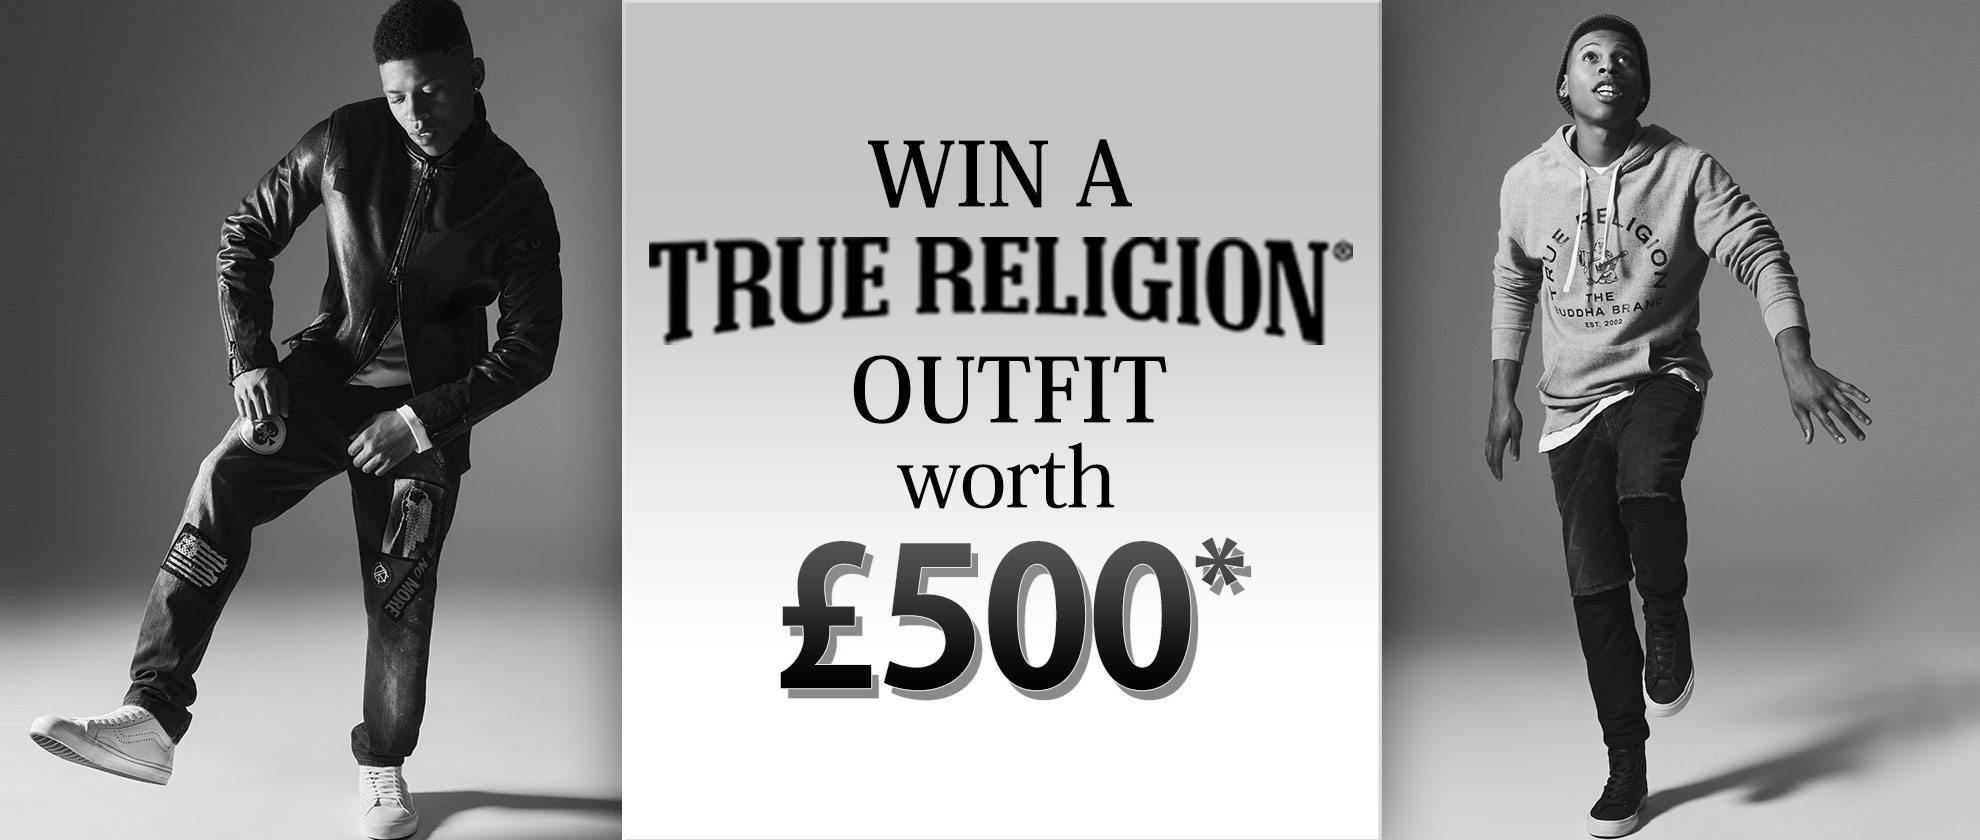 WIN a True Religion Outfit Worth £500*